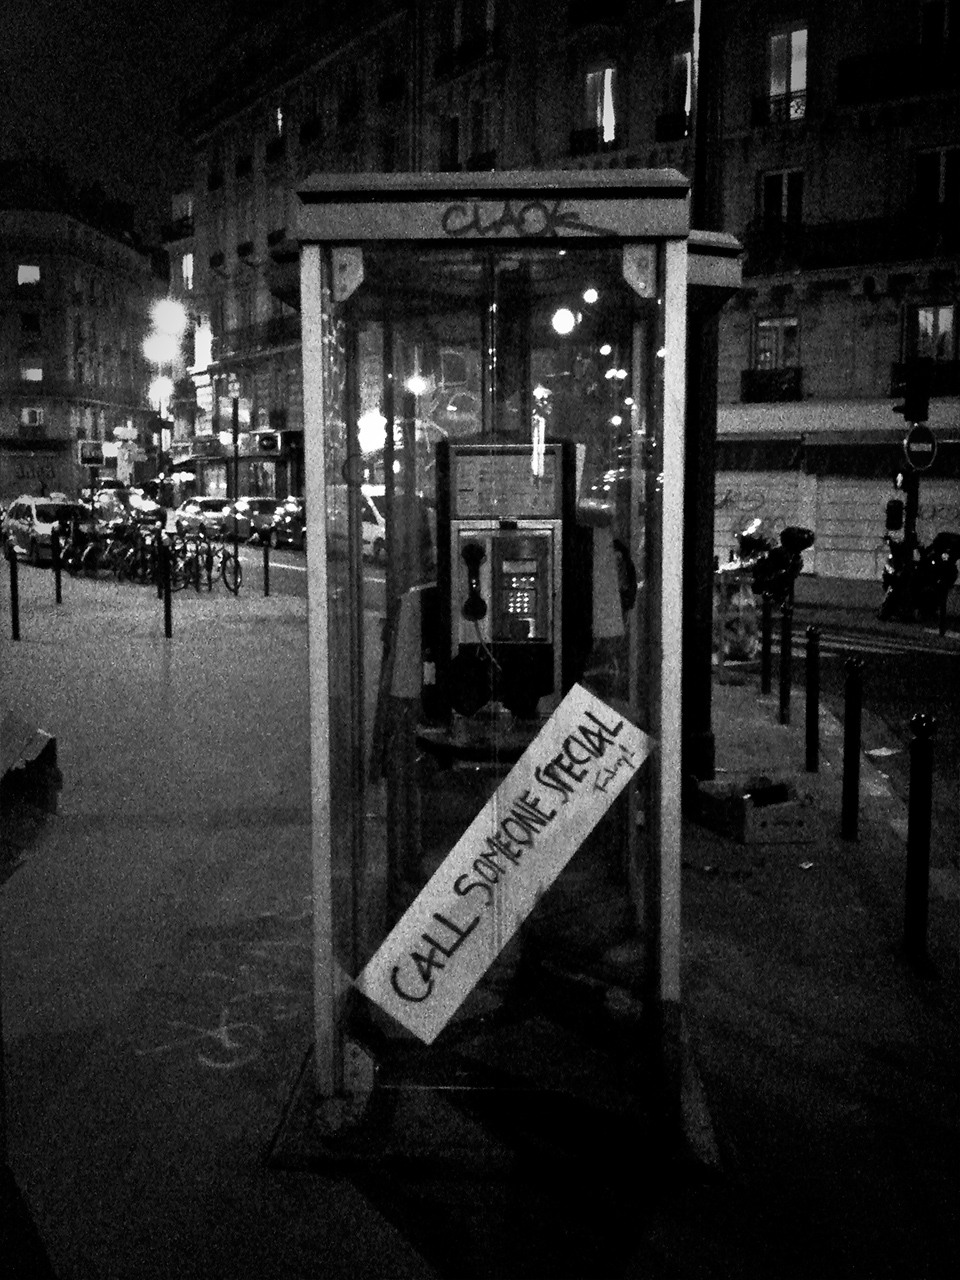 the_street_of_life_by_camilo_rojas_paris (1)_o.jpg